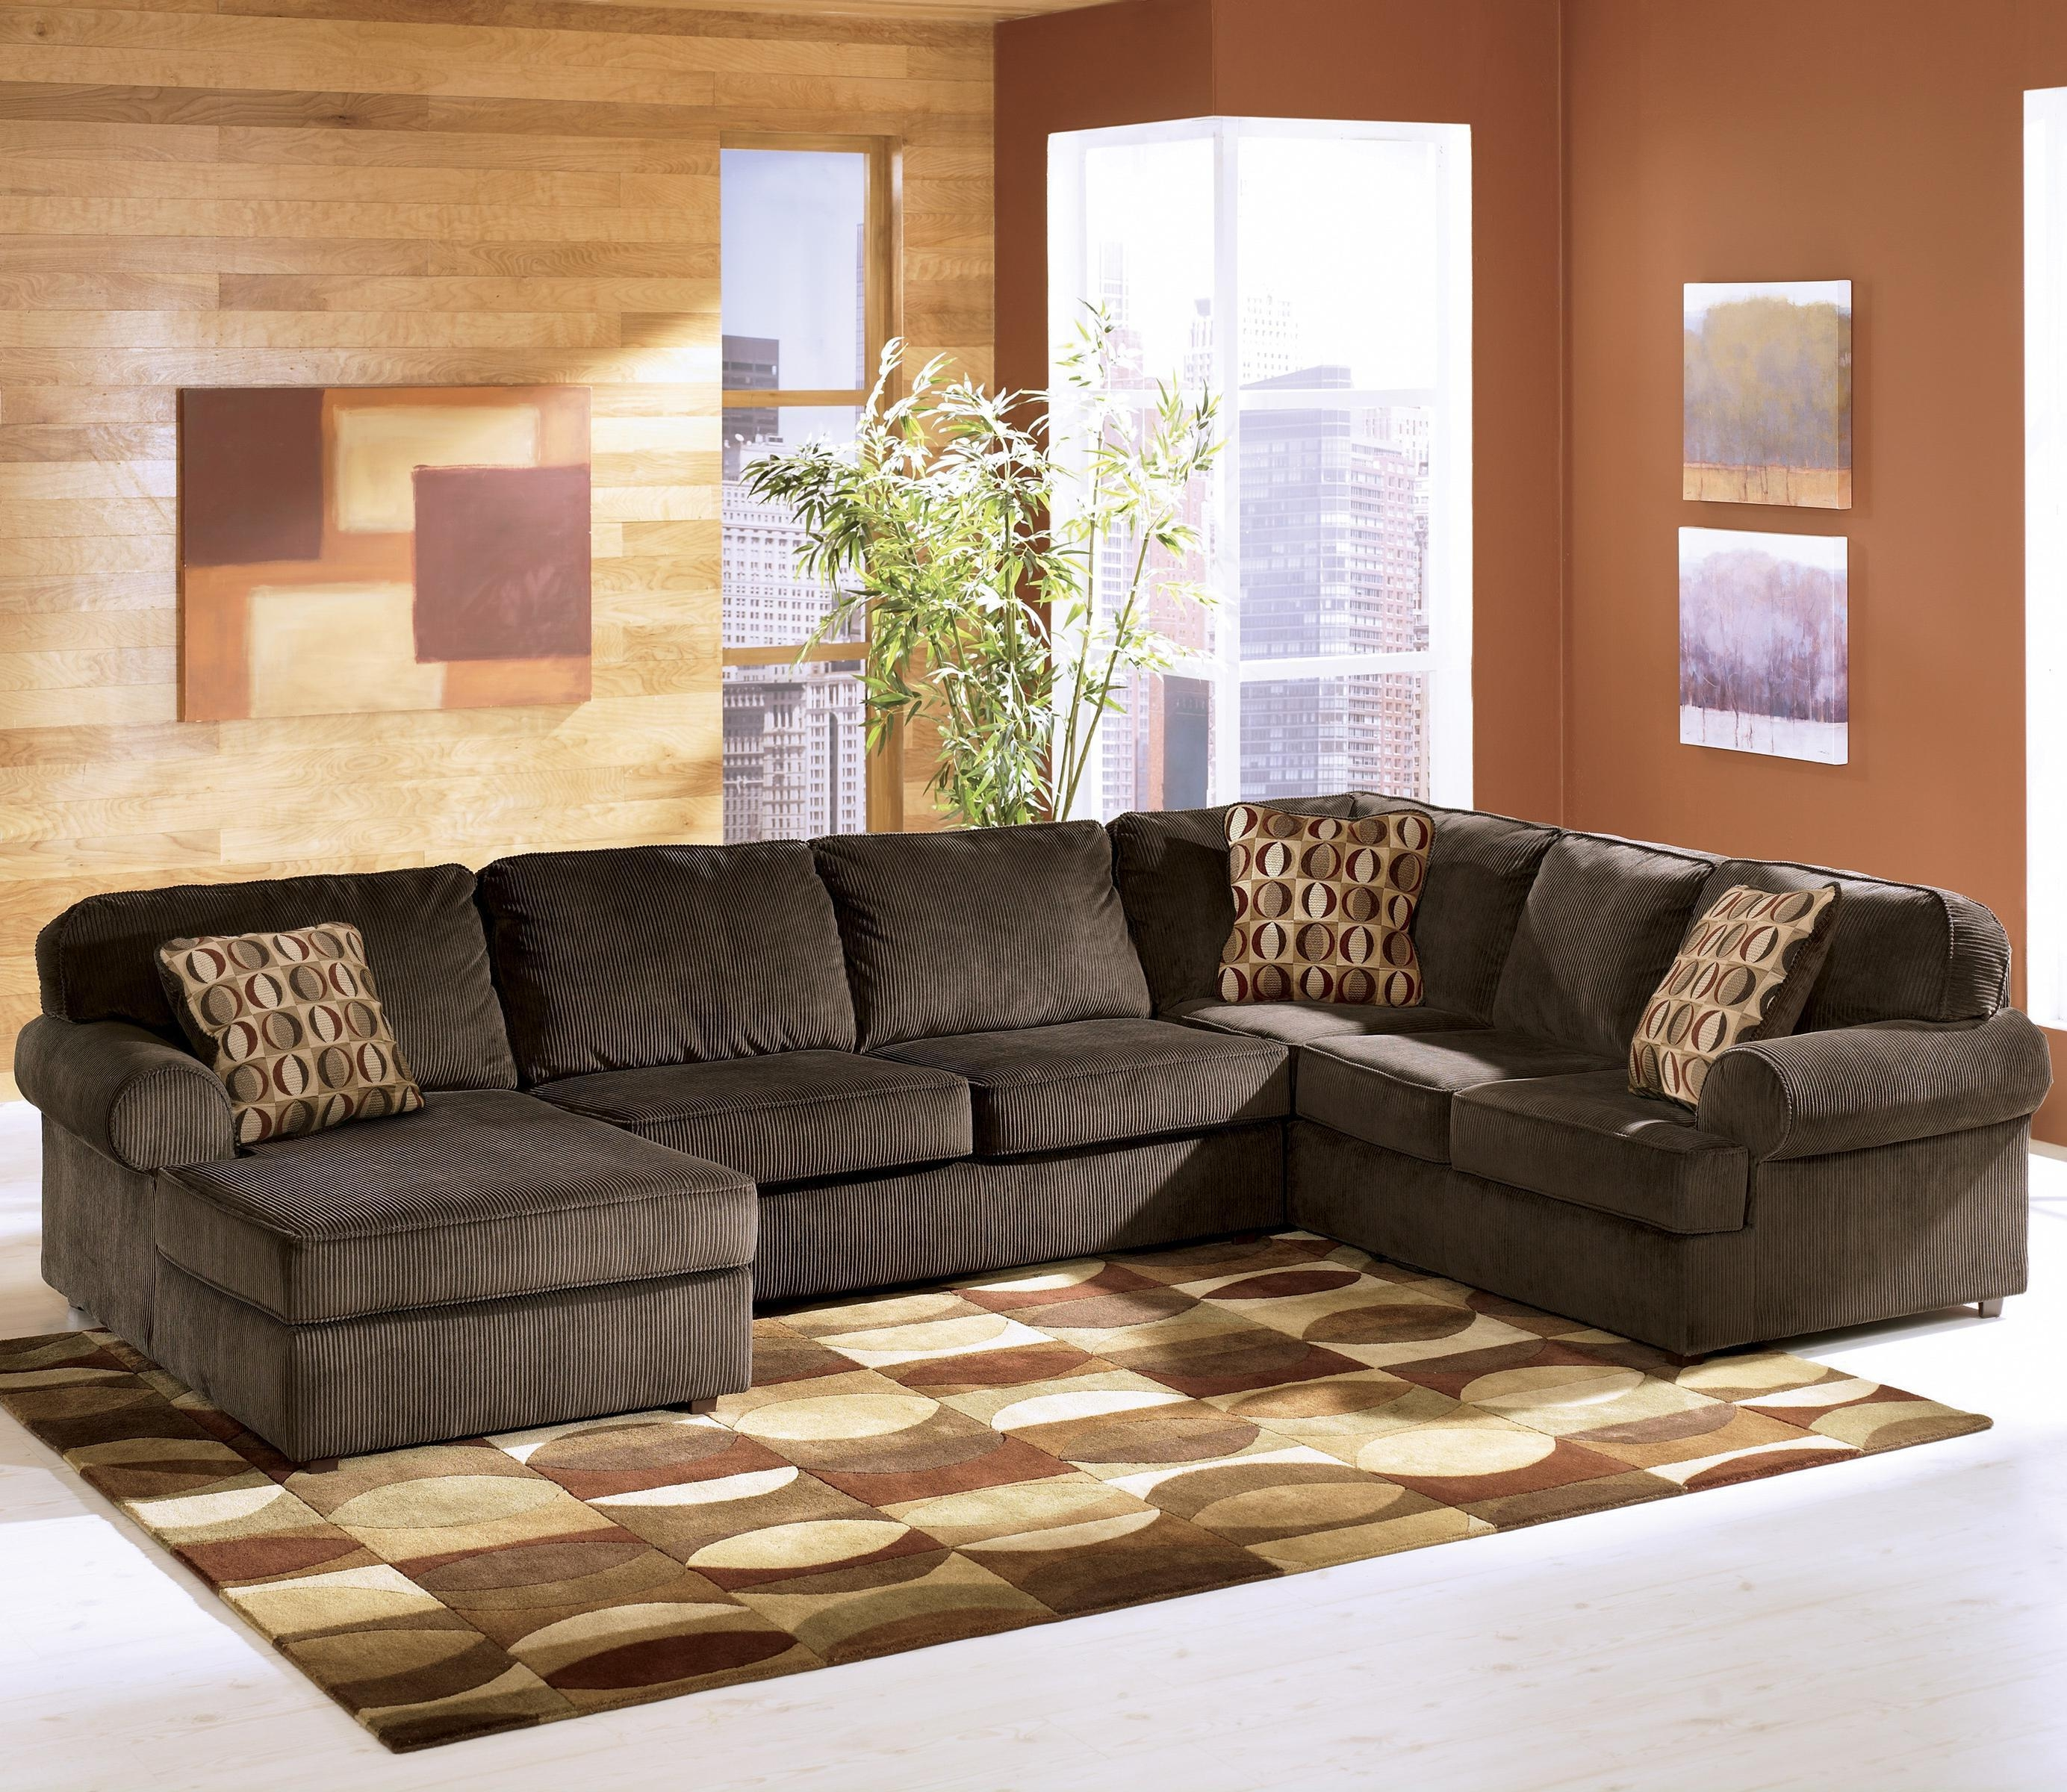 Decorating: Fill Your Living Room With Elegant Ashley Furniture Pertaining To Ashley Furniture Grenada Sectional (View 2 of 15)